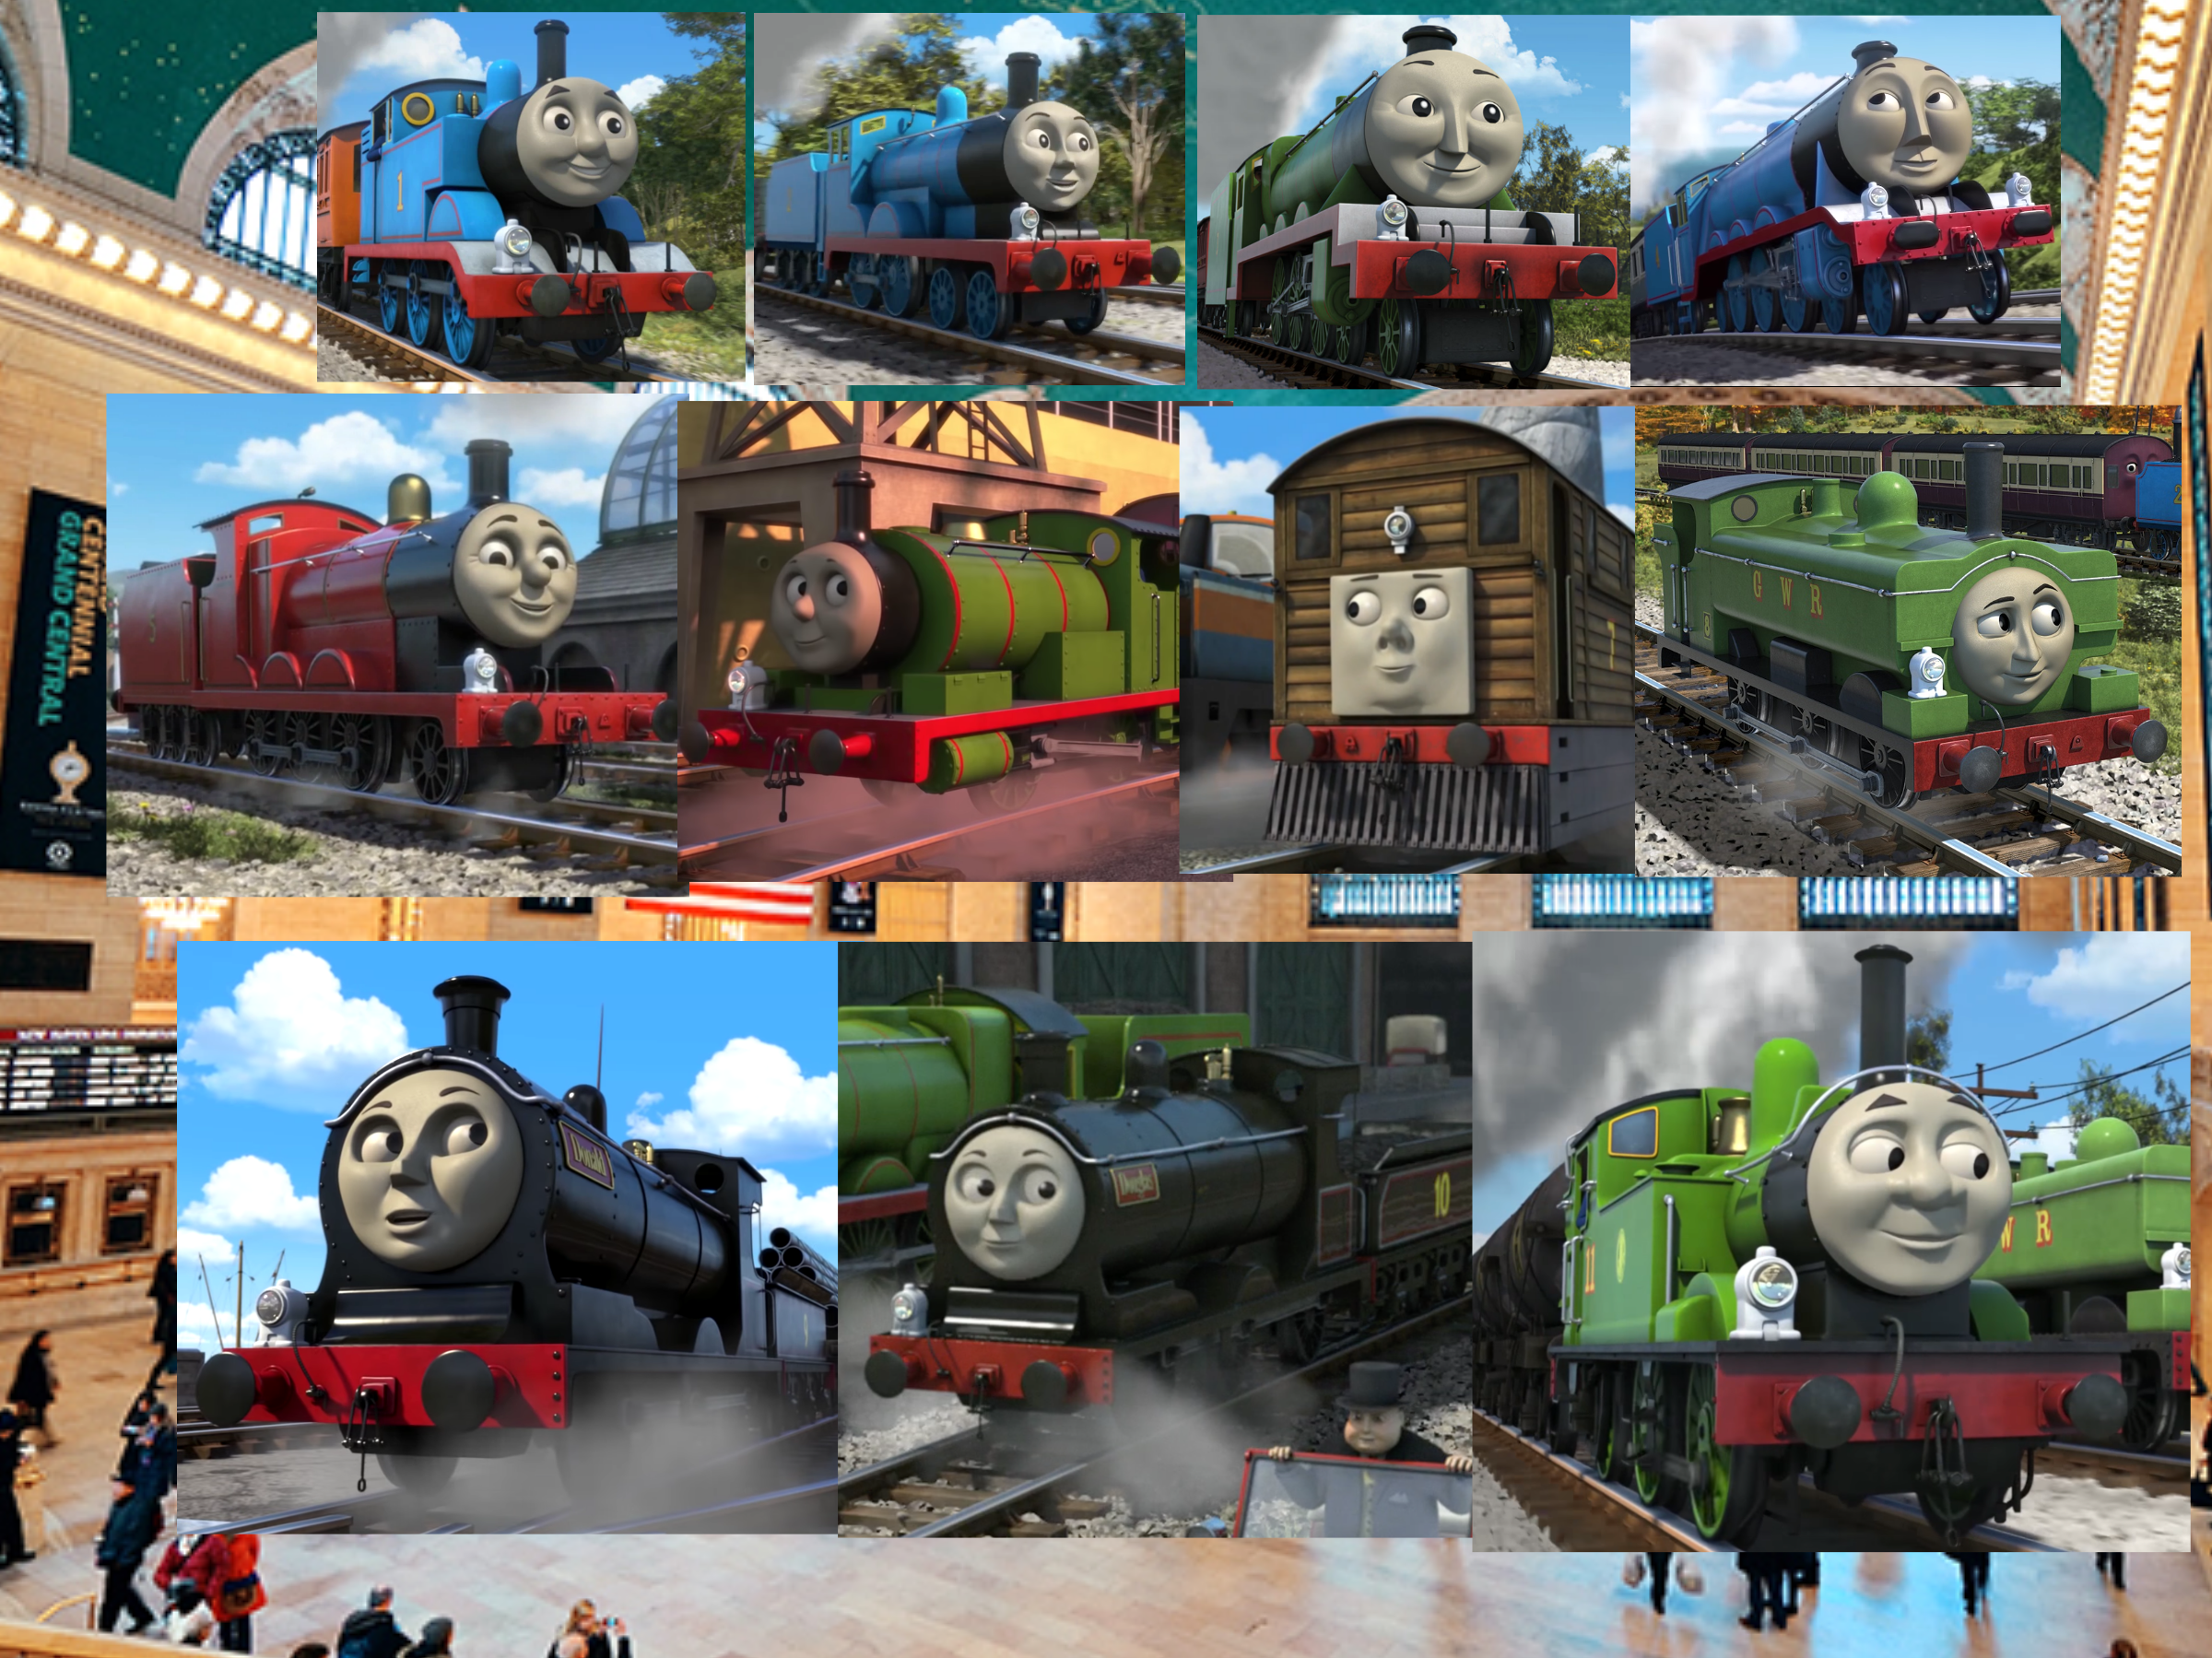 The Thomas And Friends Wallpaper Cgi By Jamesdean1987 On Deviantart